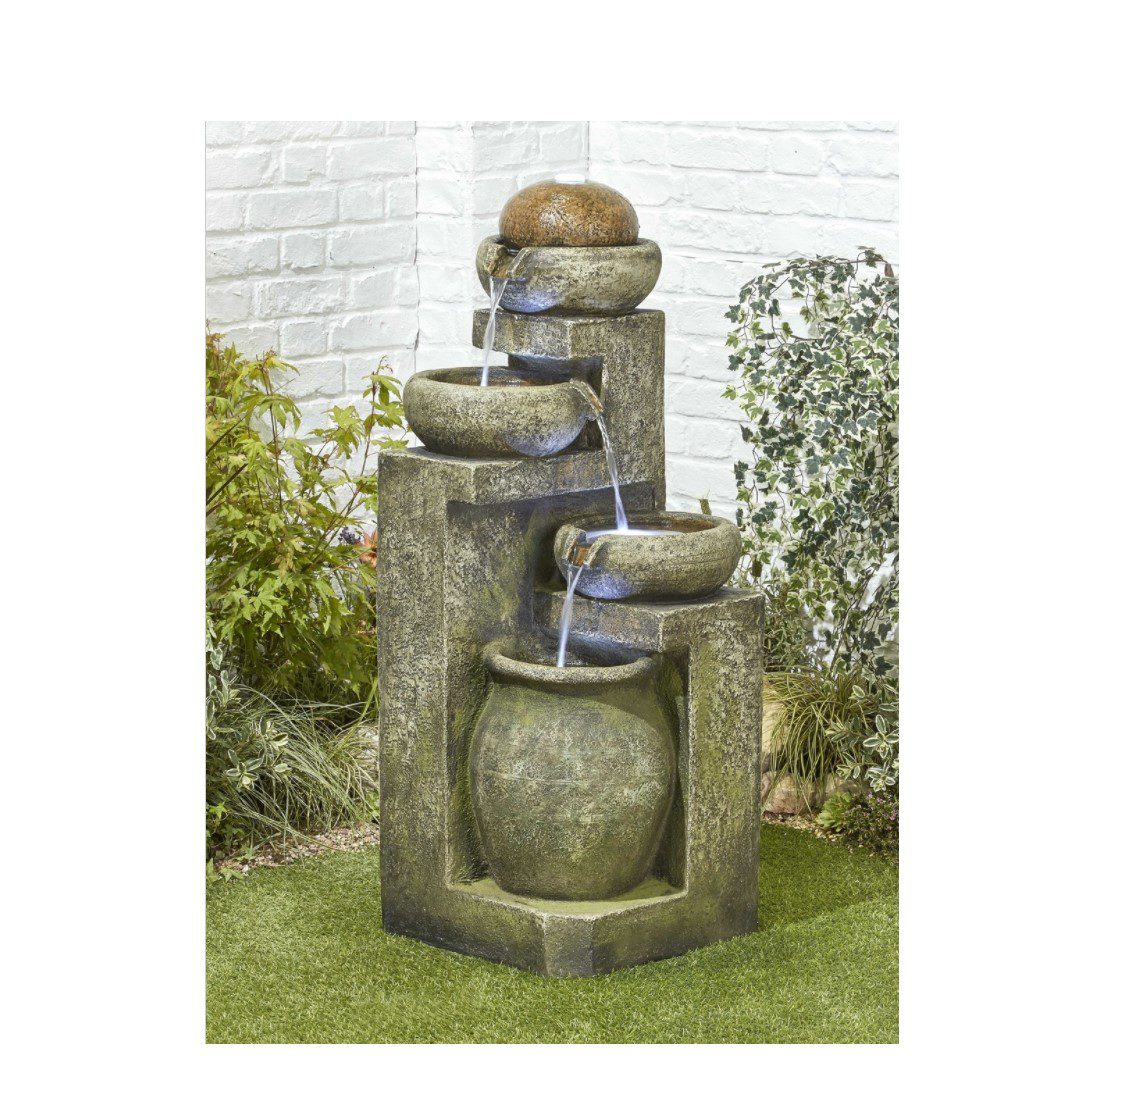 Kelkay Spanish Bowls garden water feature